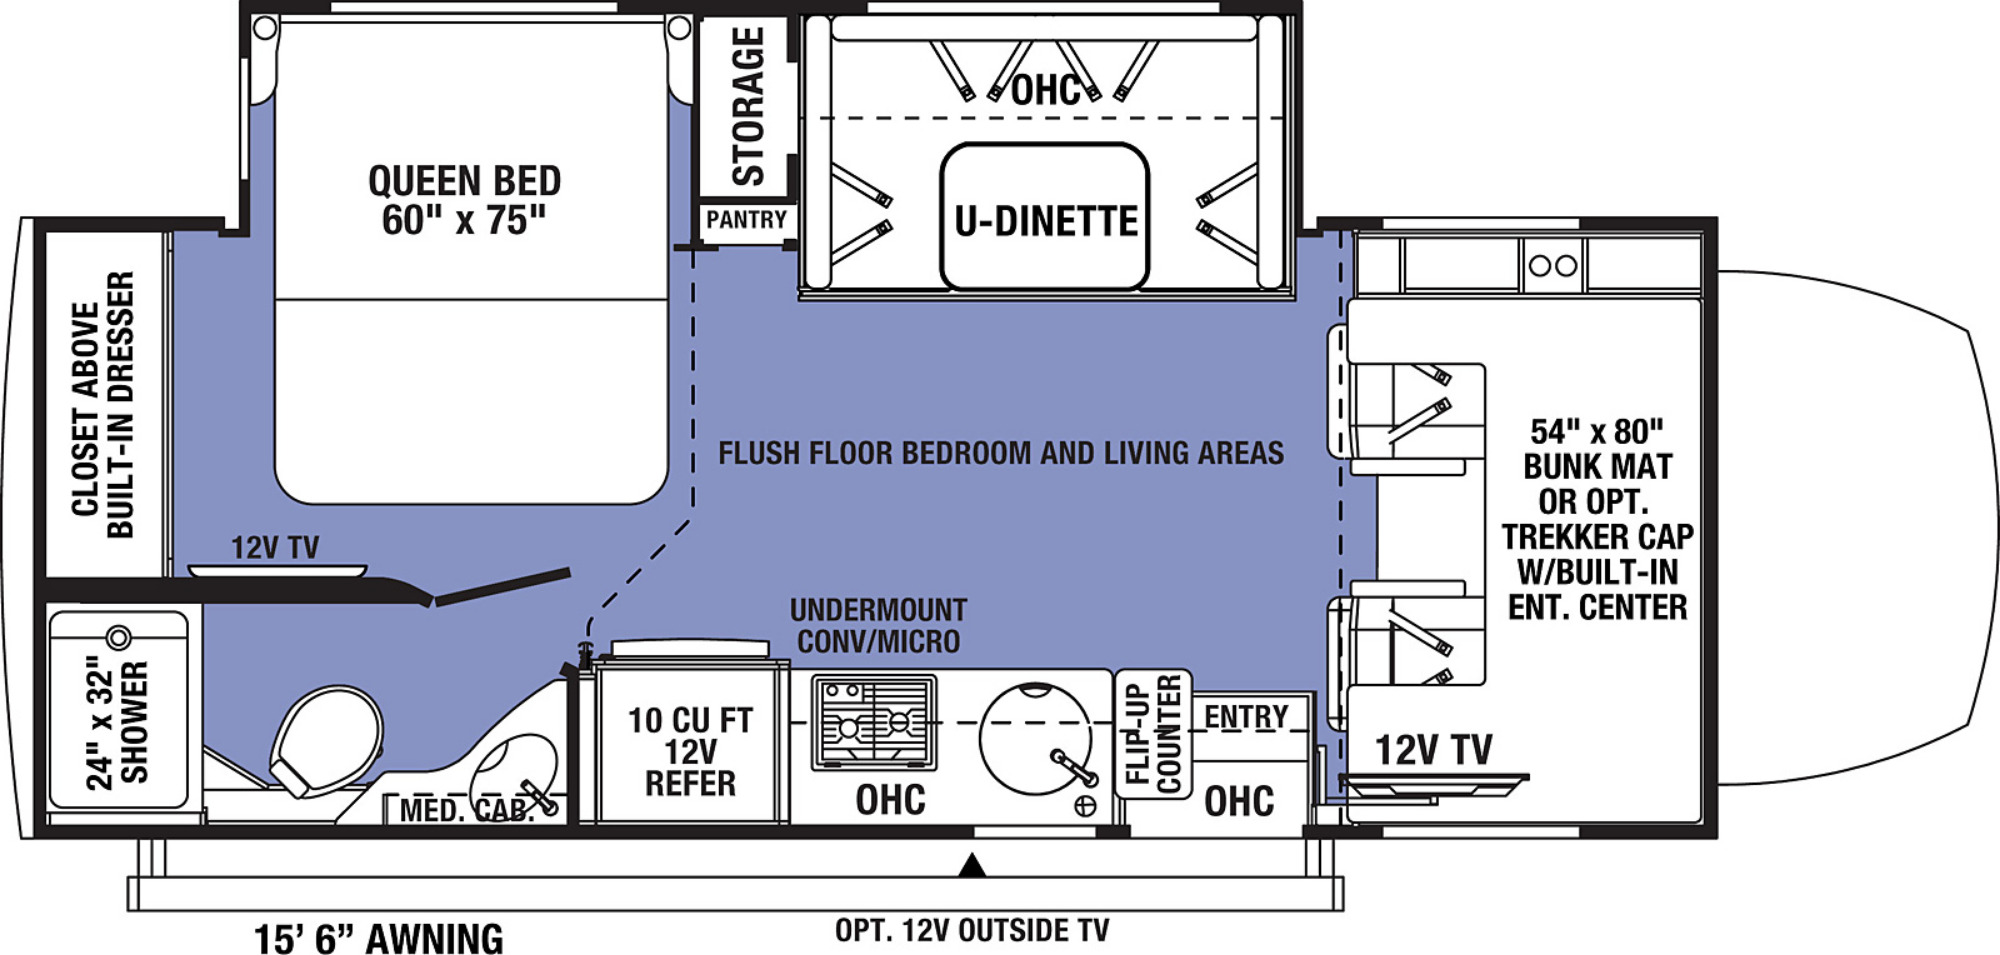 View Floor Plan for 2022 FOREST RIVER SUNSEEKER MBS 2400B